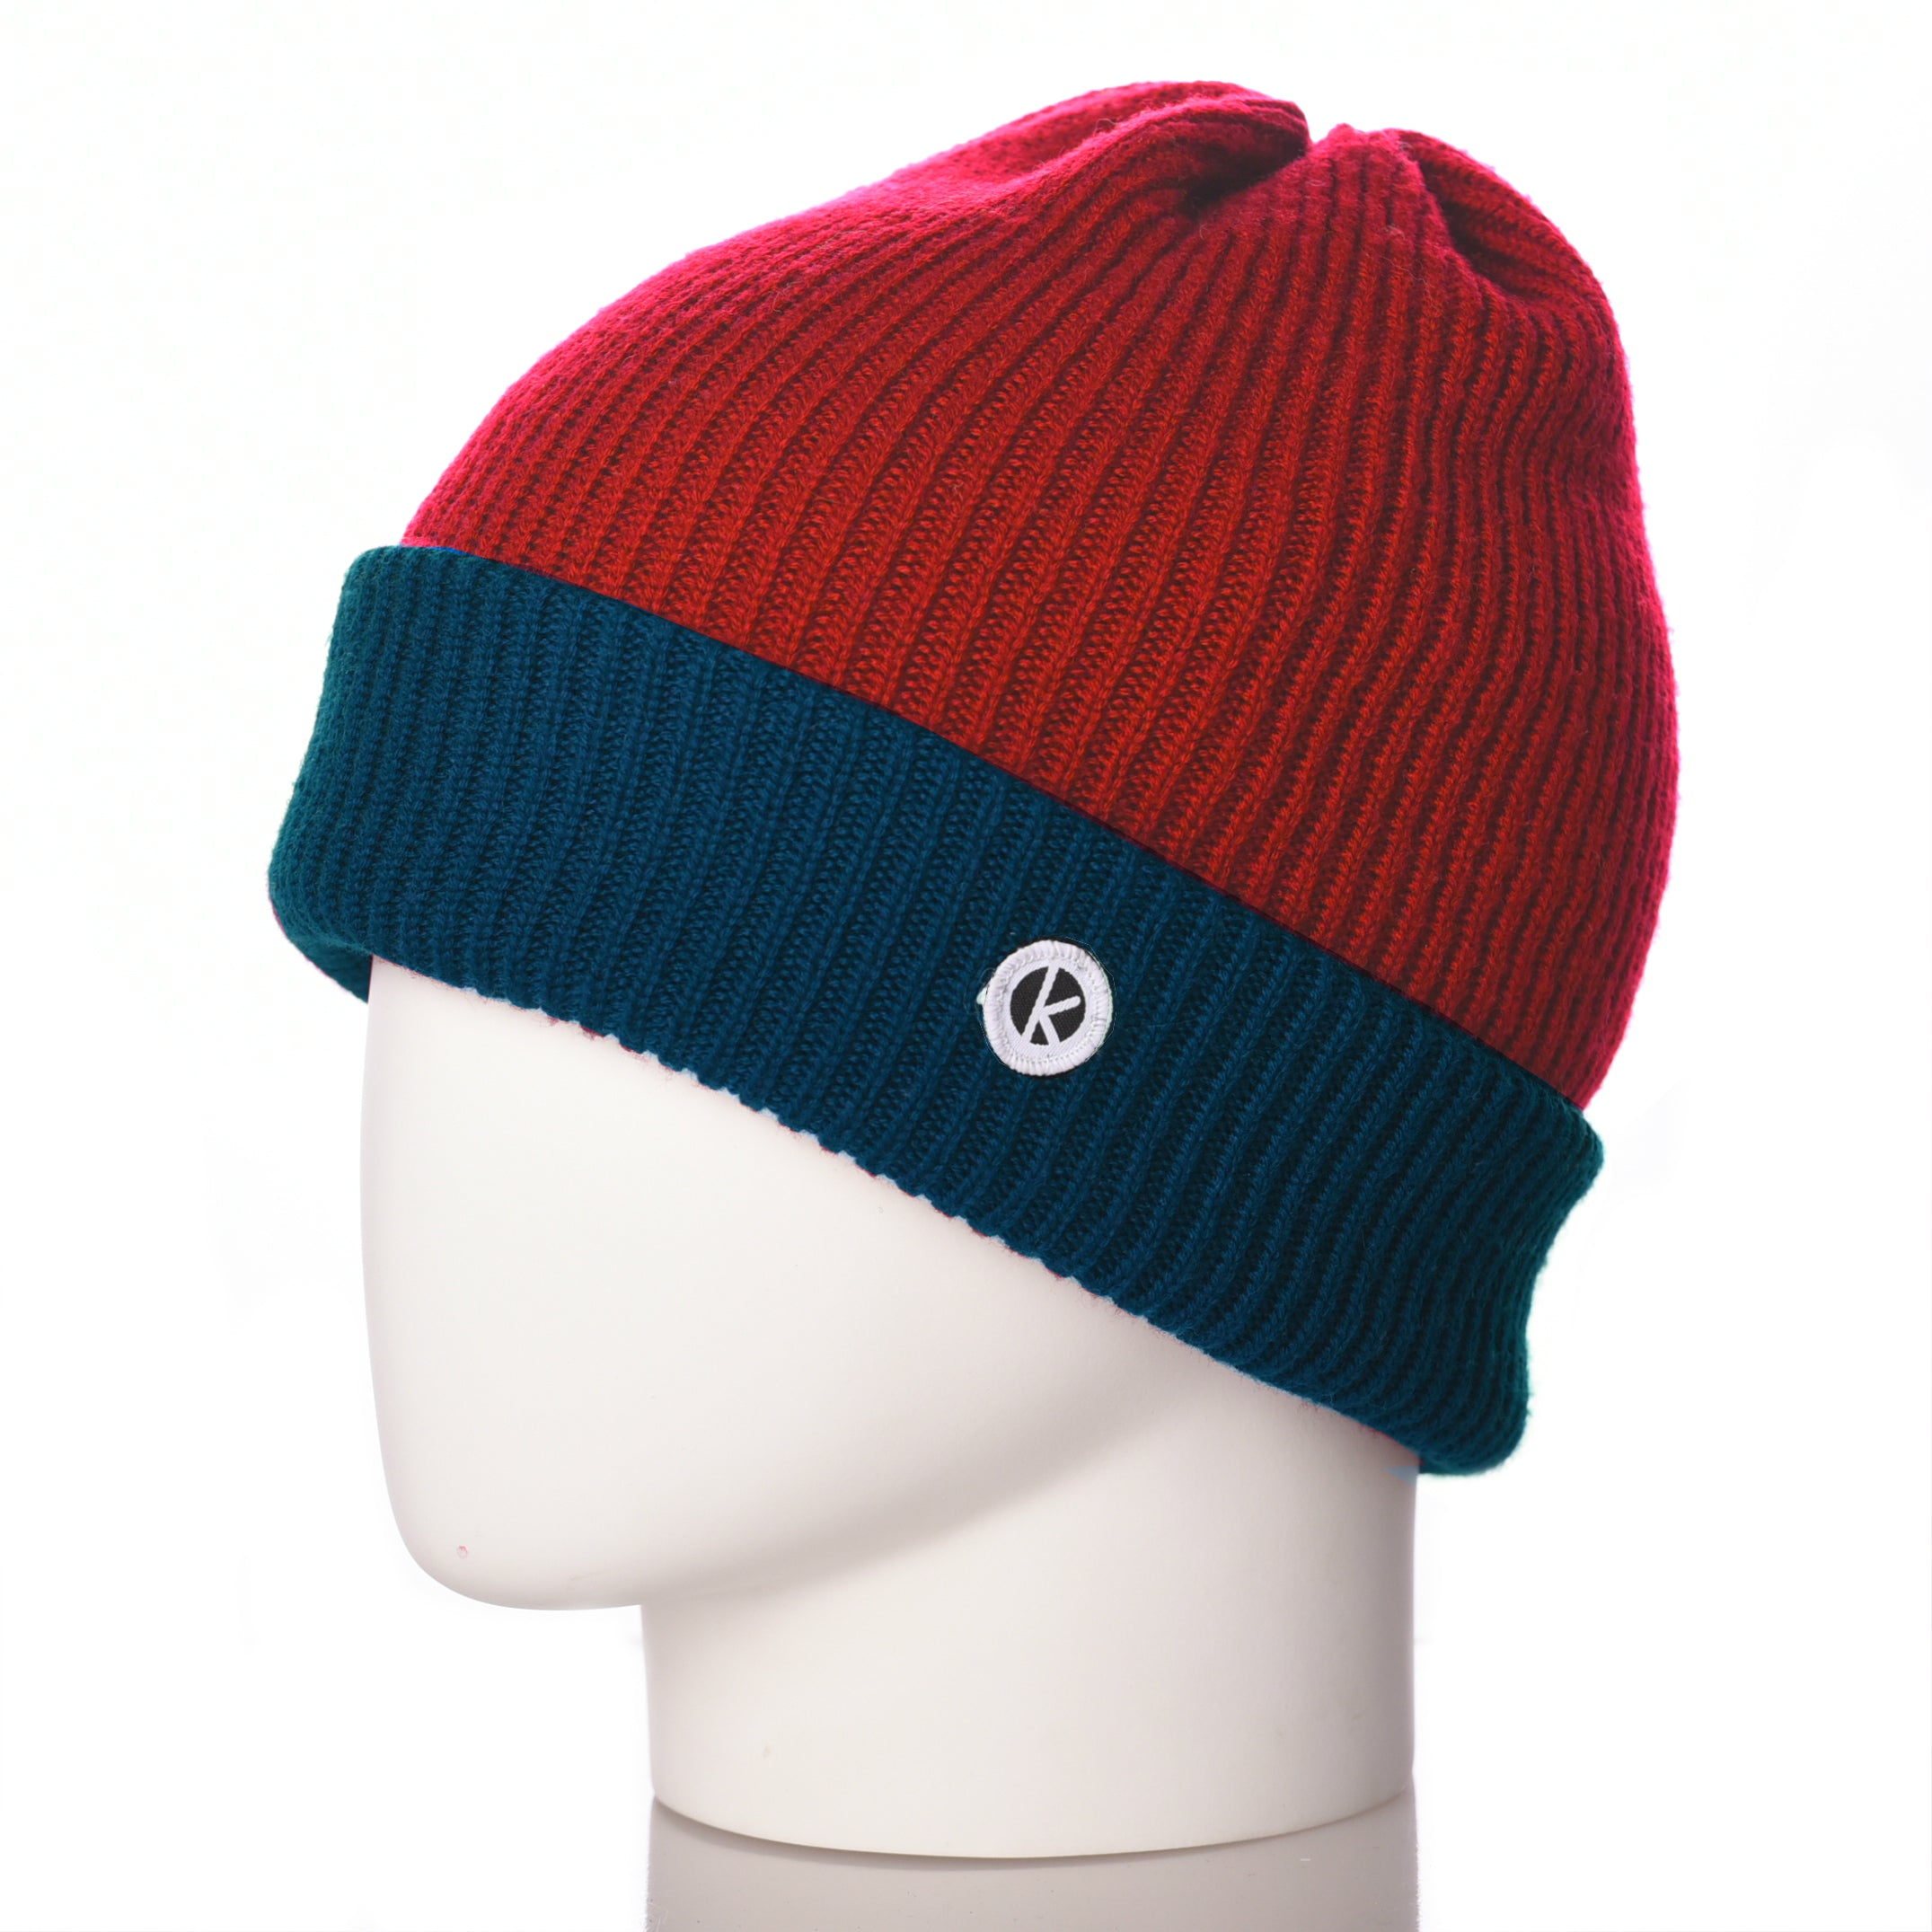 Bowen Turn Up Merino Wool Beanie - Contrast - K-nit